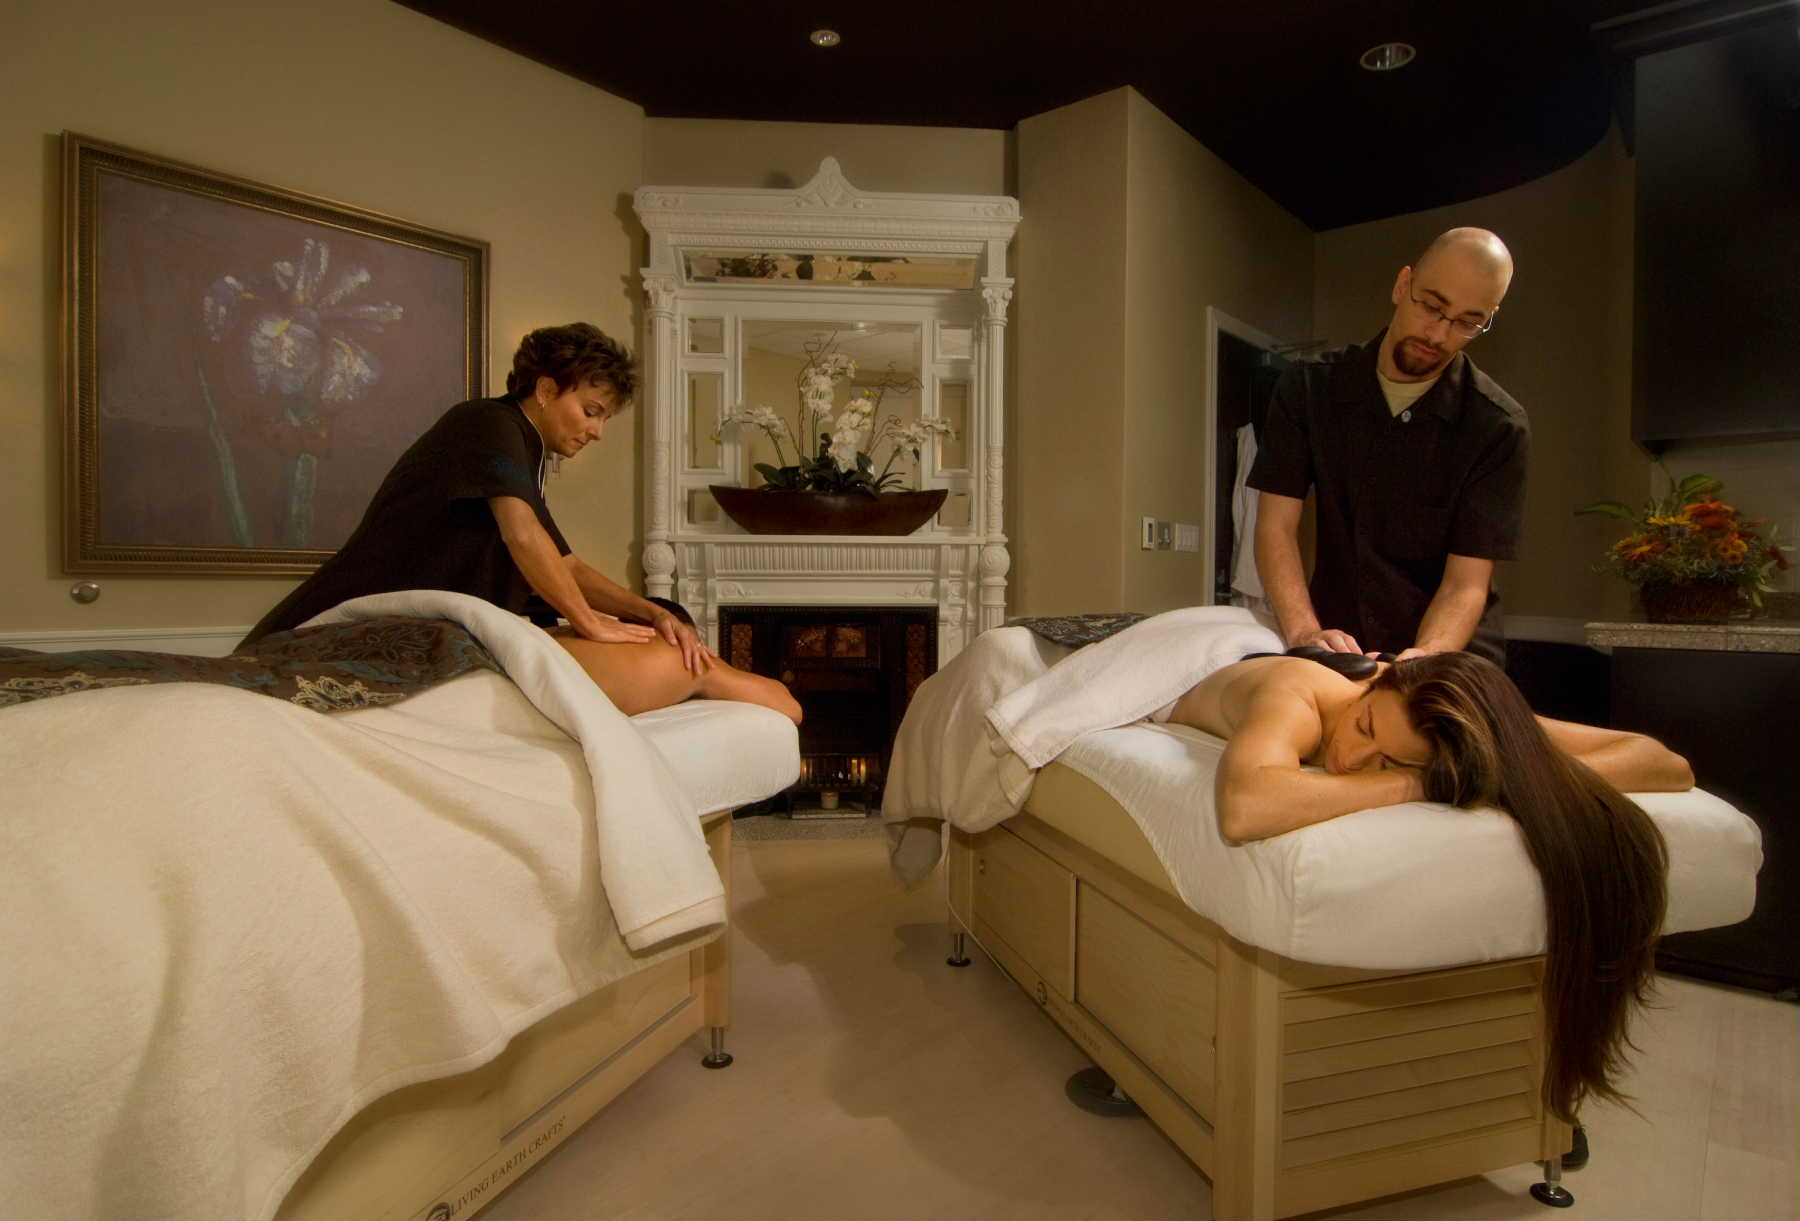 Warm up this winter with vacation packages at glenwood hot for Best girlfriend spa getaways